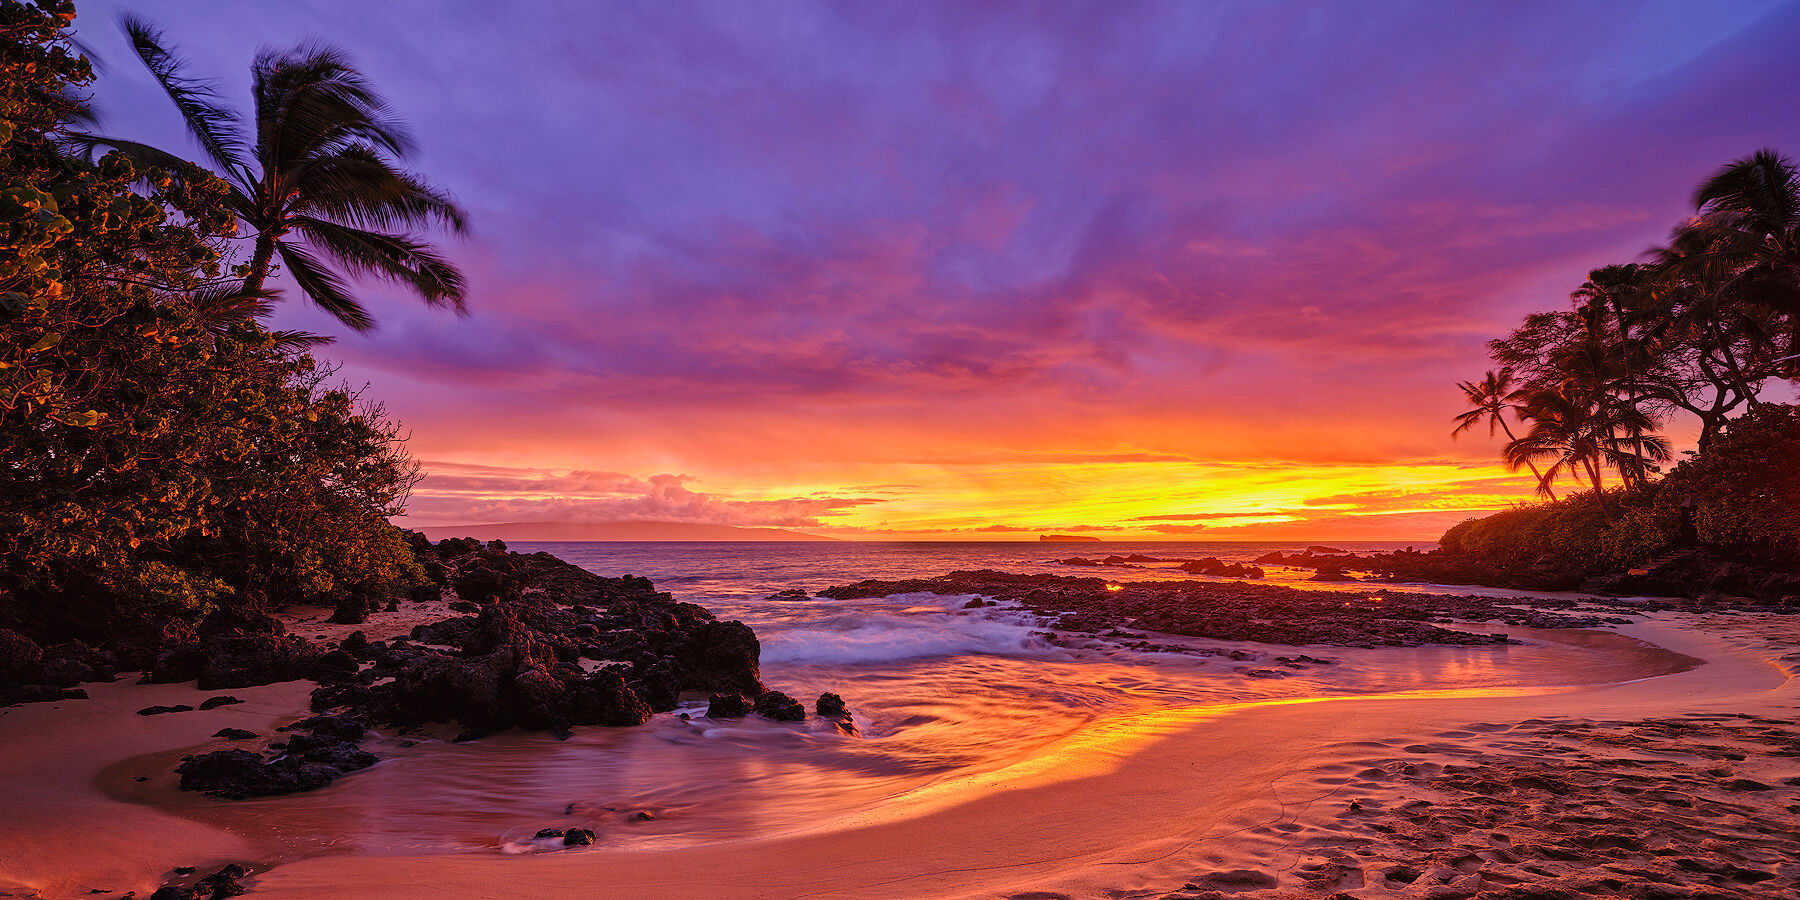 panorama of a very dramatic and vibrant colored sunset erupts at Secret Beach in Makena on the island of Maui